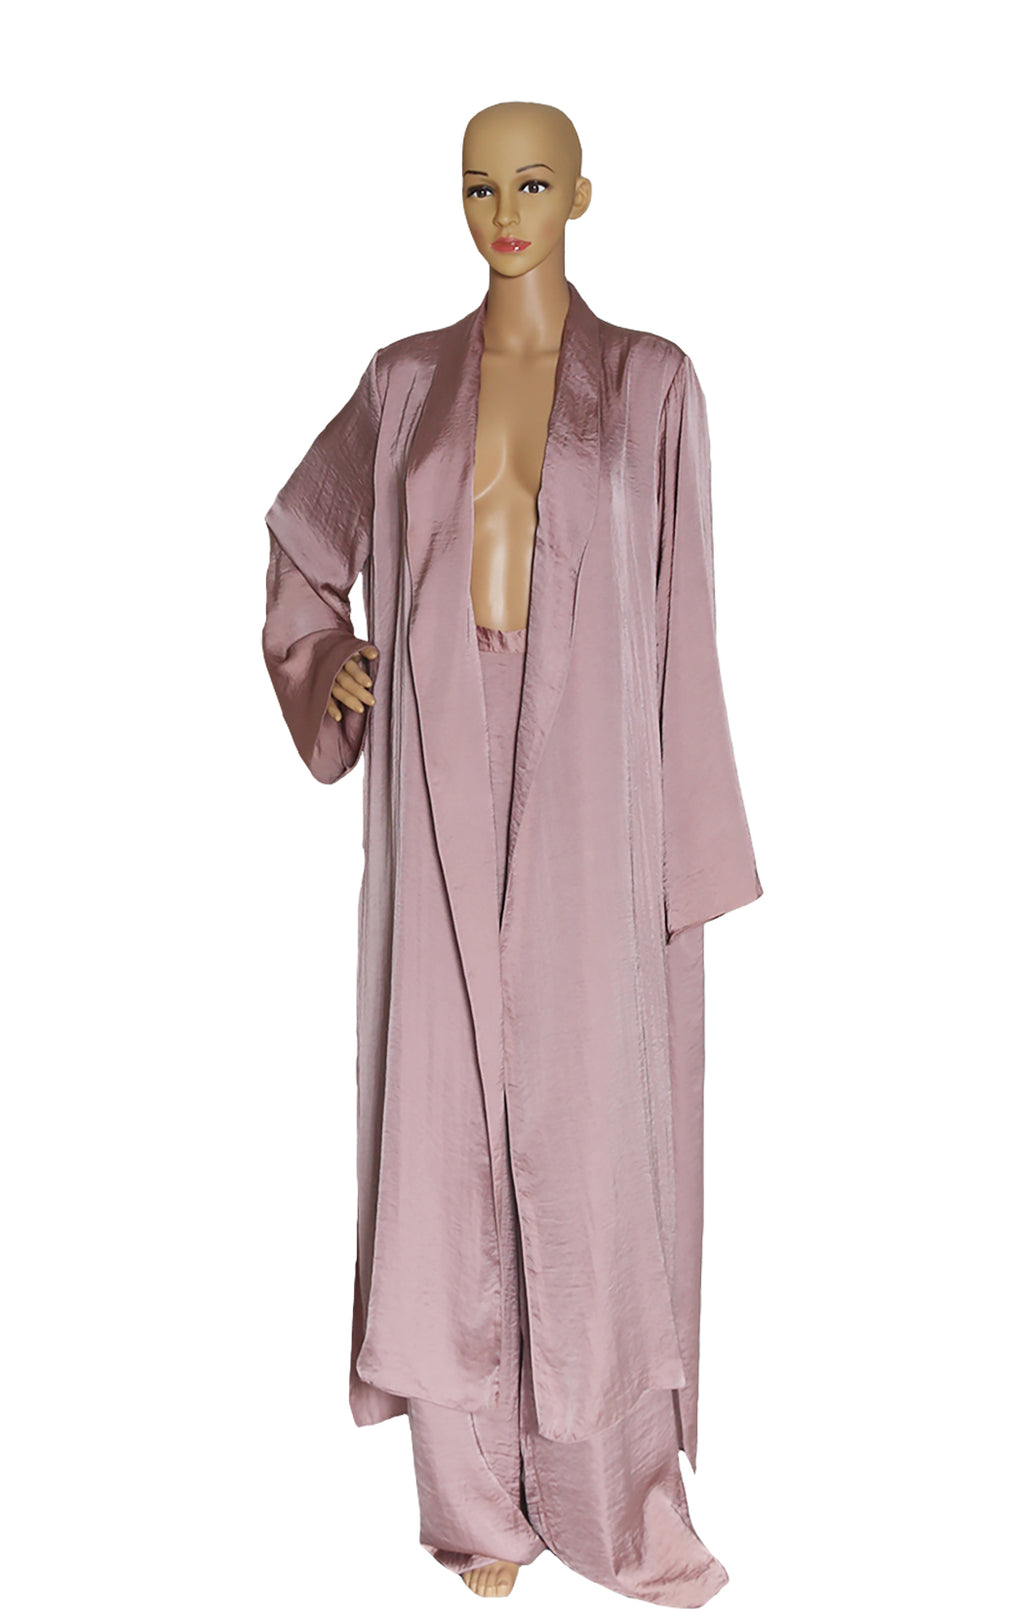 Front view of JUAN CARLOS ORLANDO Long Duster Coat and Matching Pant with Tags Size: US 4 (runs full)